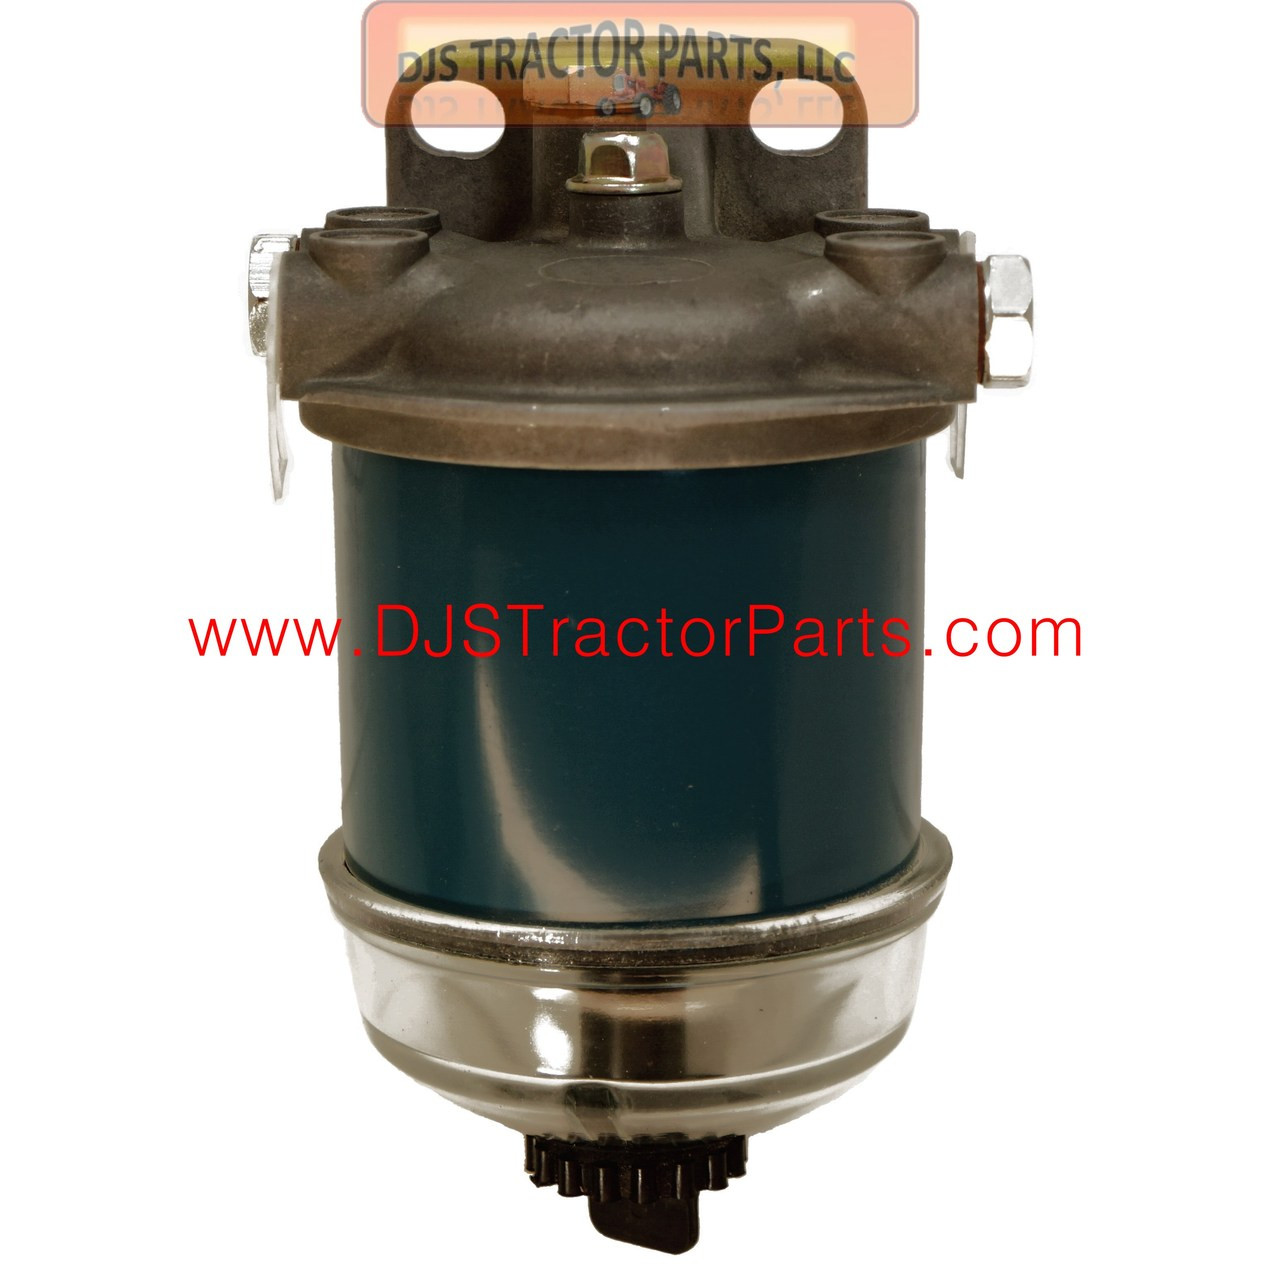 hight resolution of diesel single fuel filter assembly with glass bowl ab 1423d djsdiesel single fuel filter assembly with